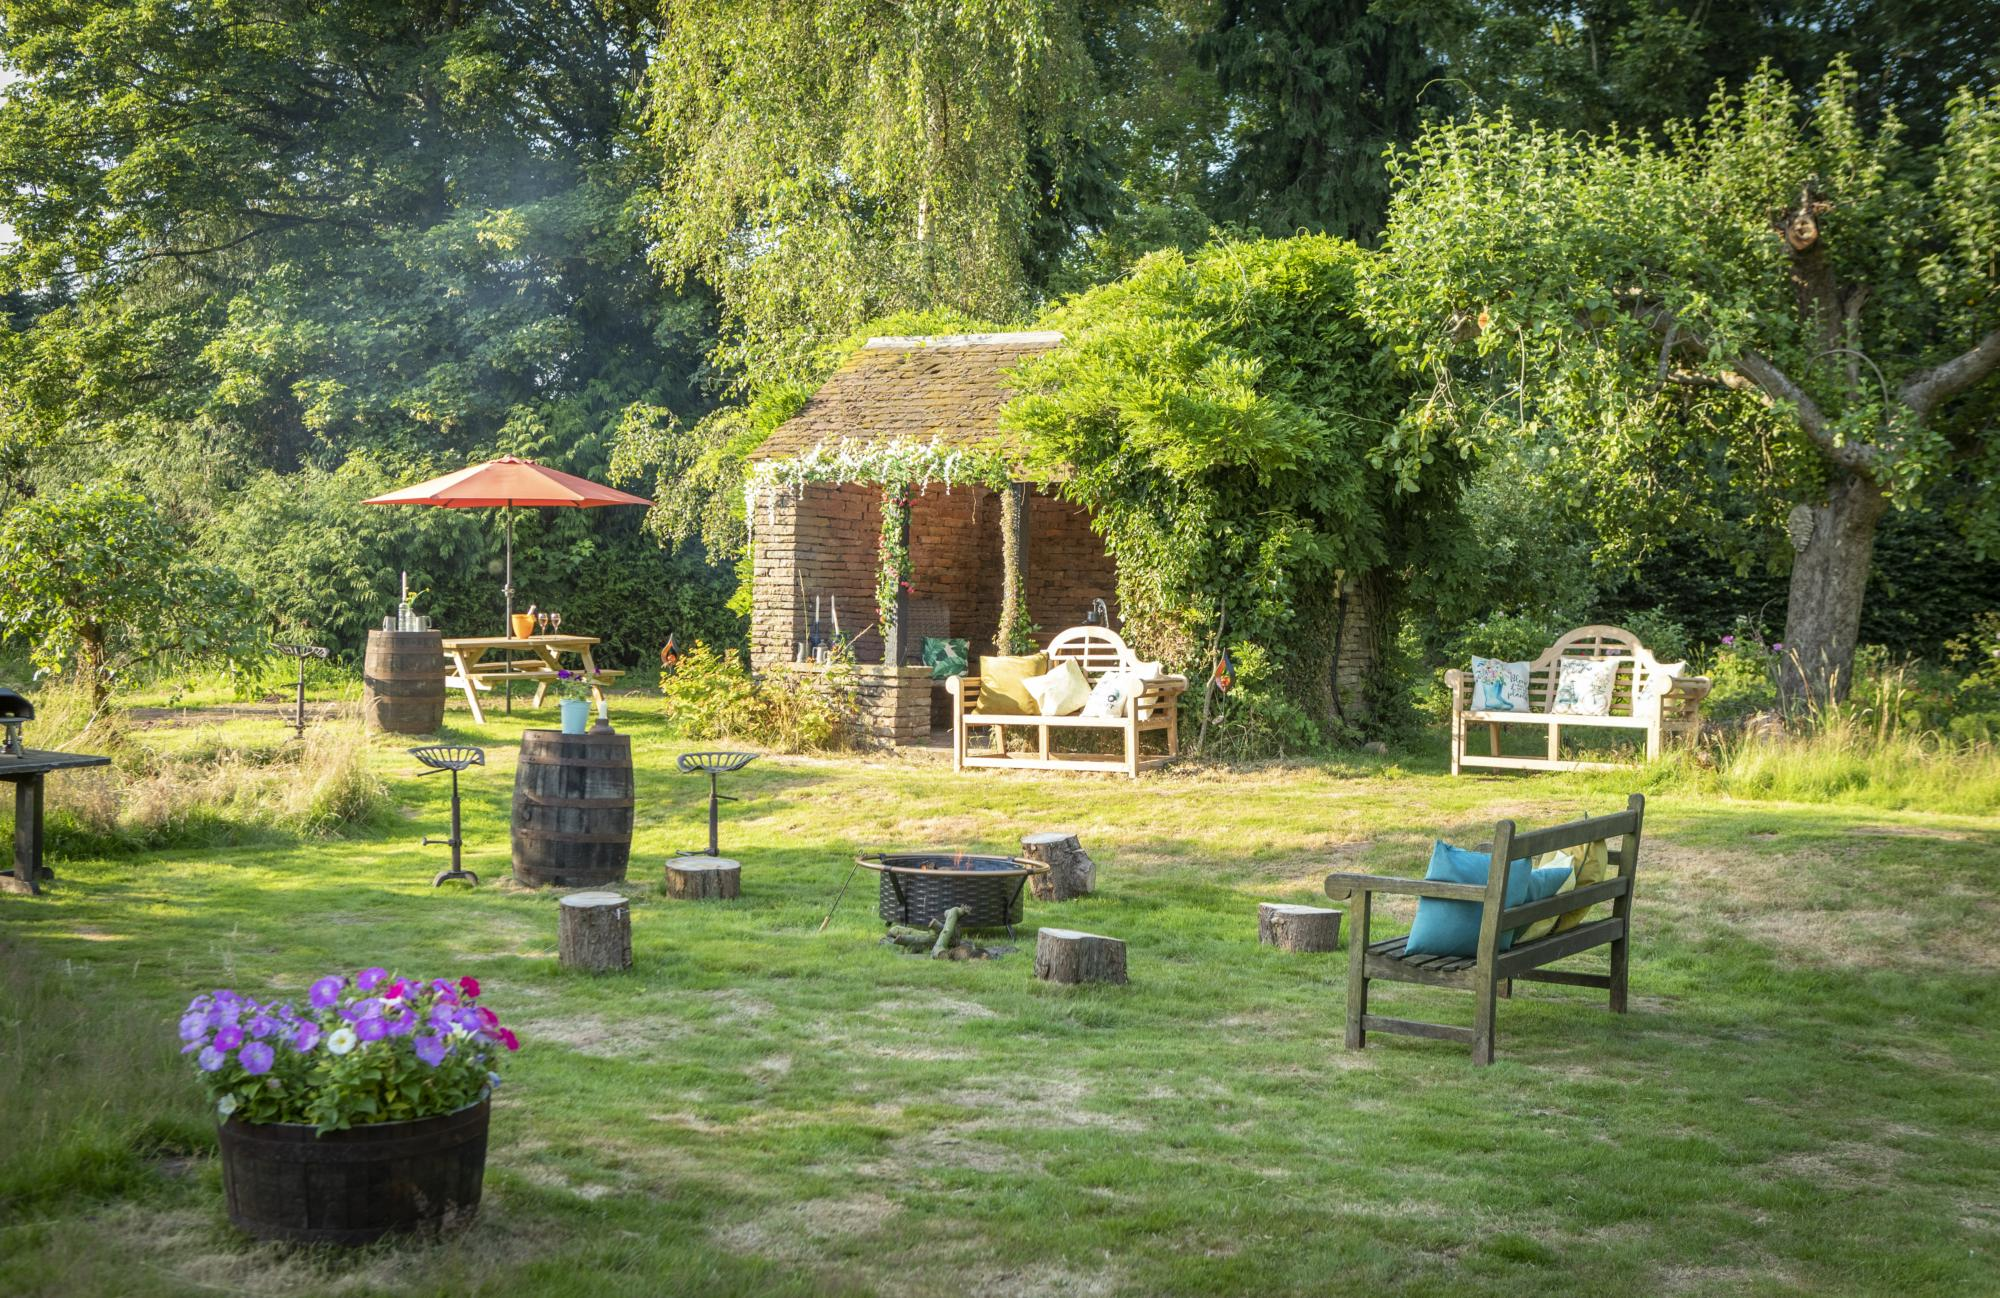 Glamping in England – I Love This Campsite